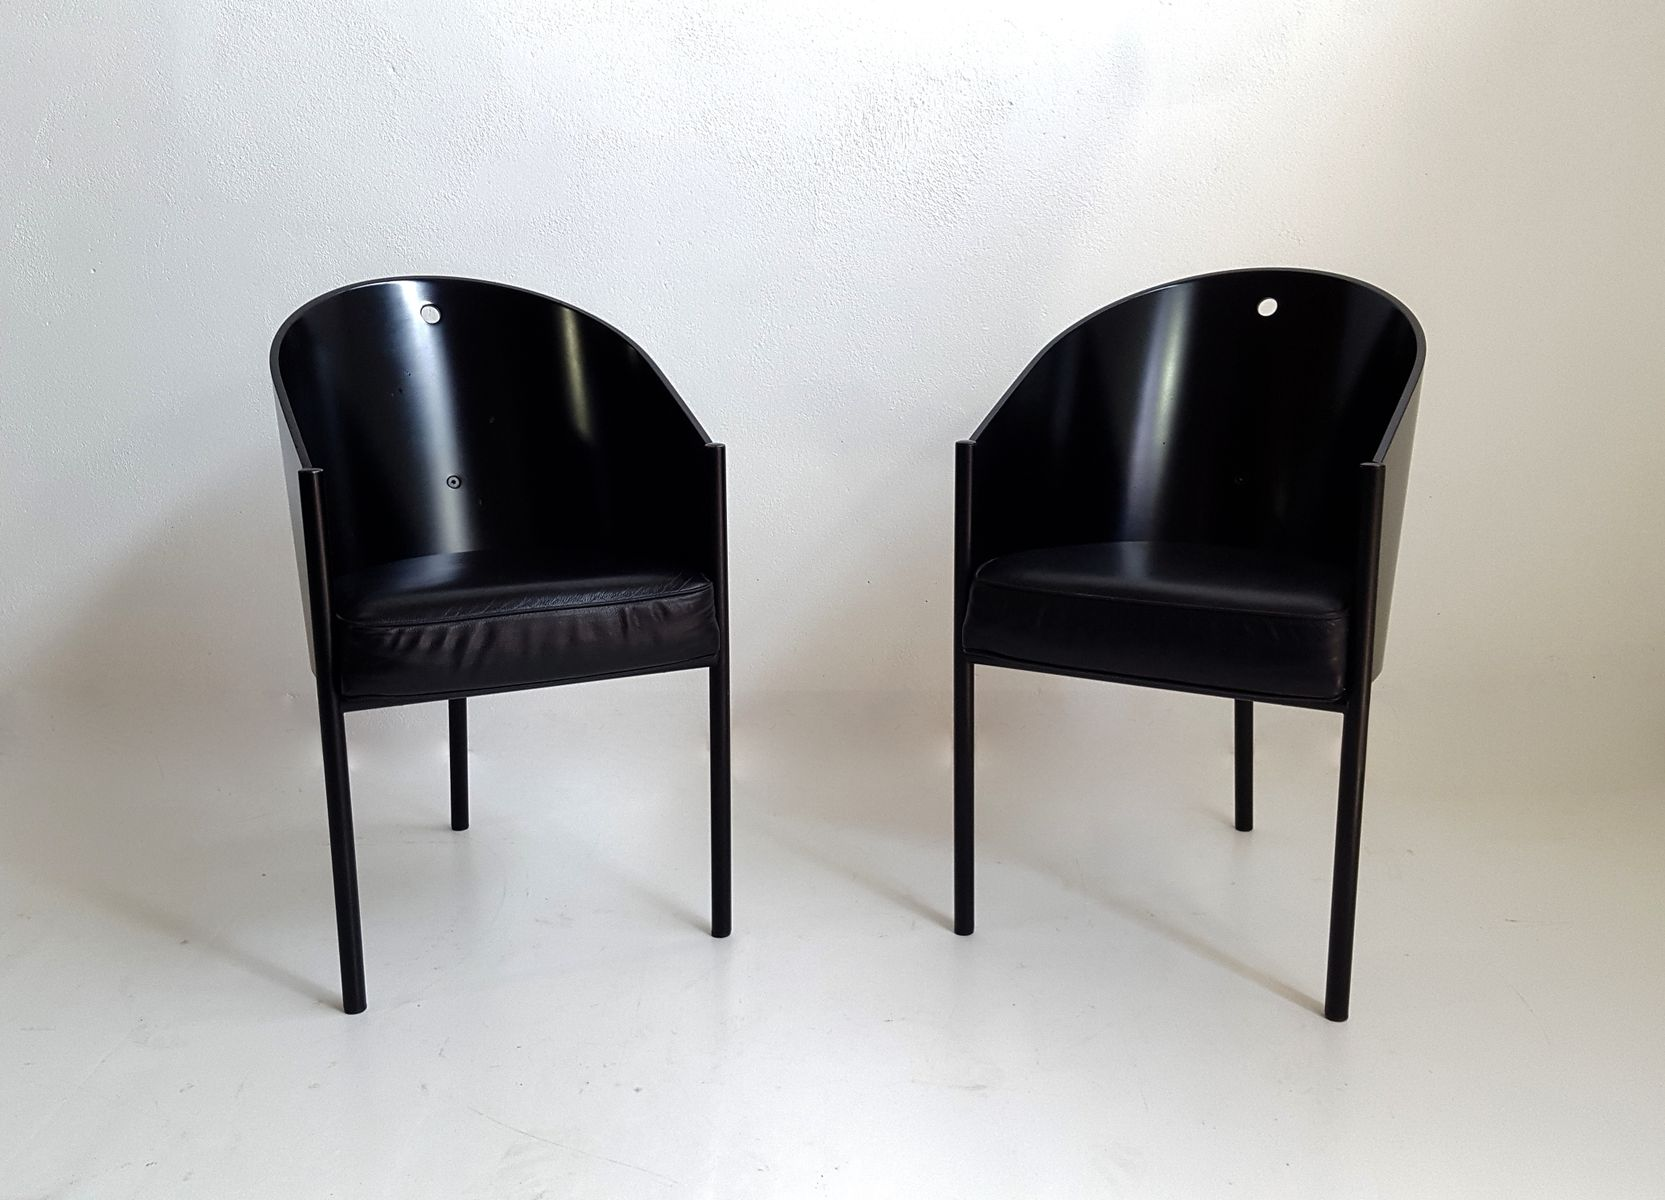 Costes chair by philippe starck for driade 1980s for sale at pamono for Philippe starck chair